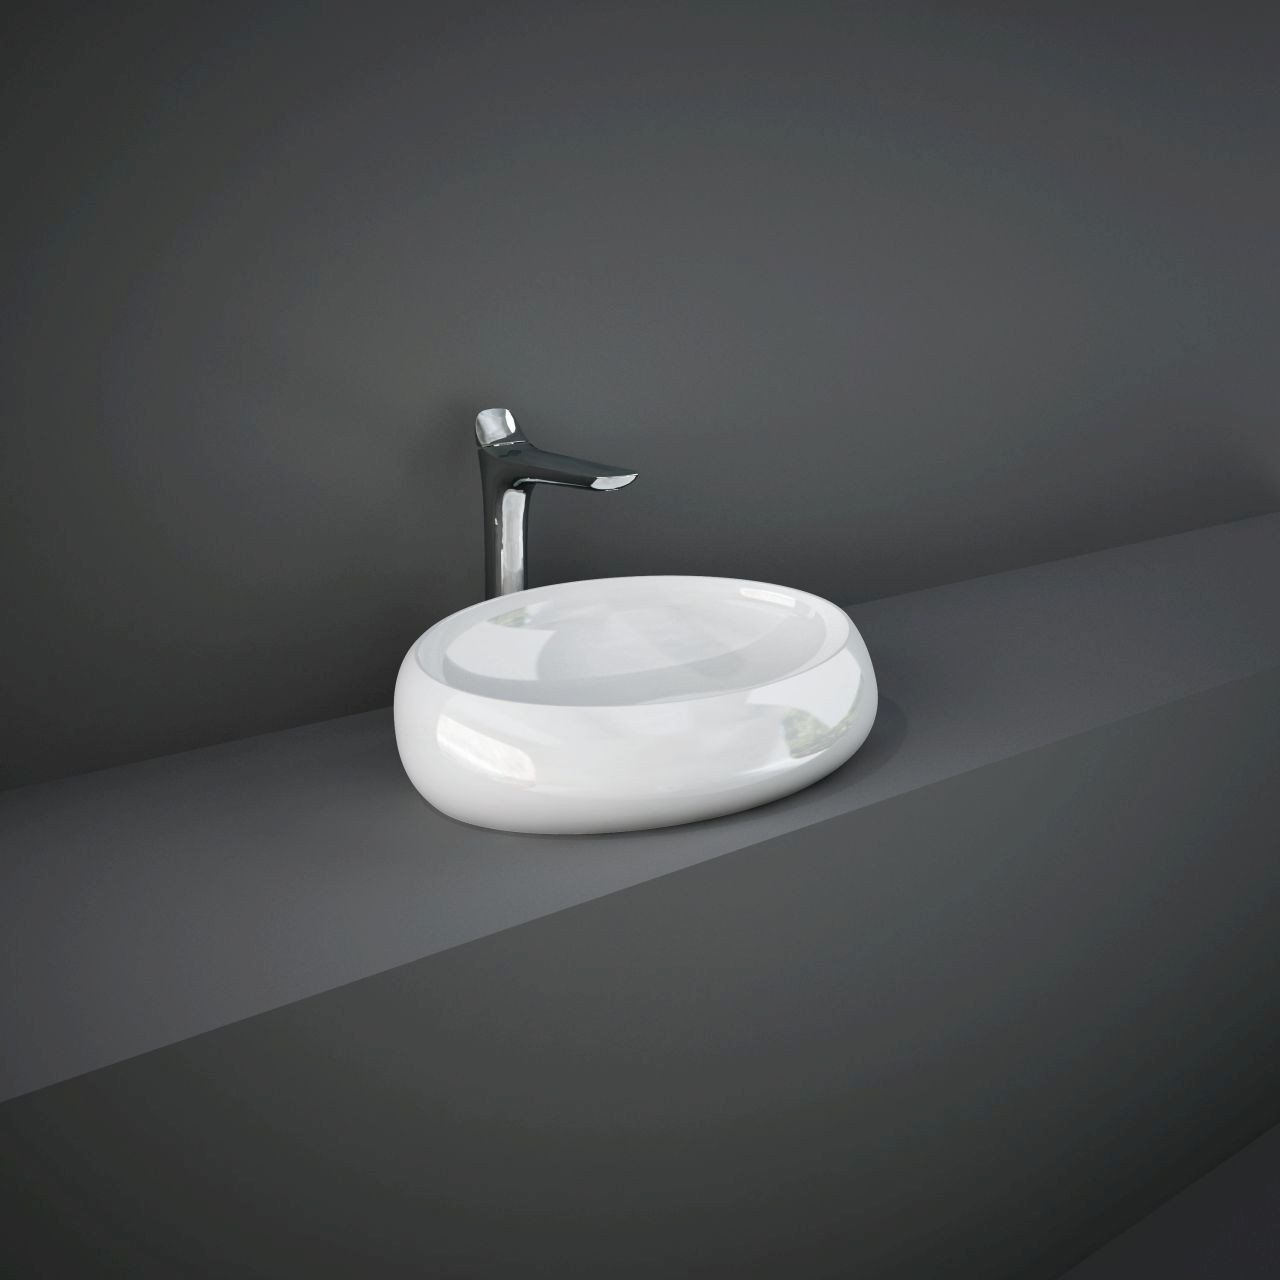 RAK Cloud Gloss Alpine White 600mm Counter Top Basin without Overflow - CLOCT6000AWHA